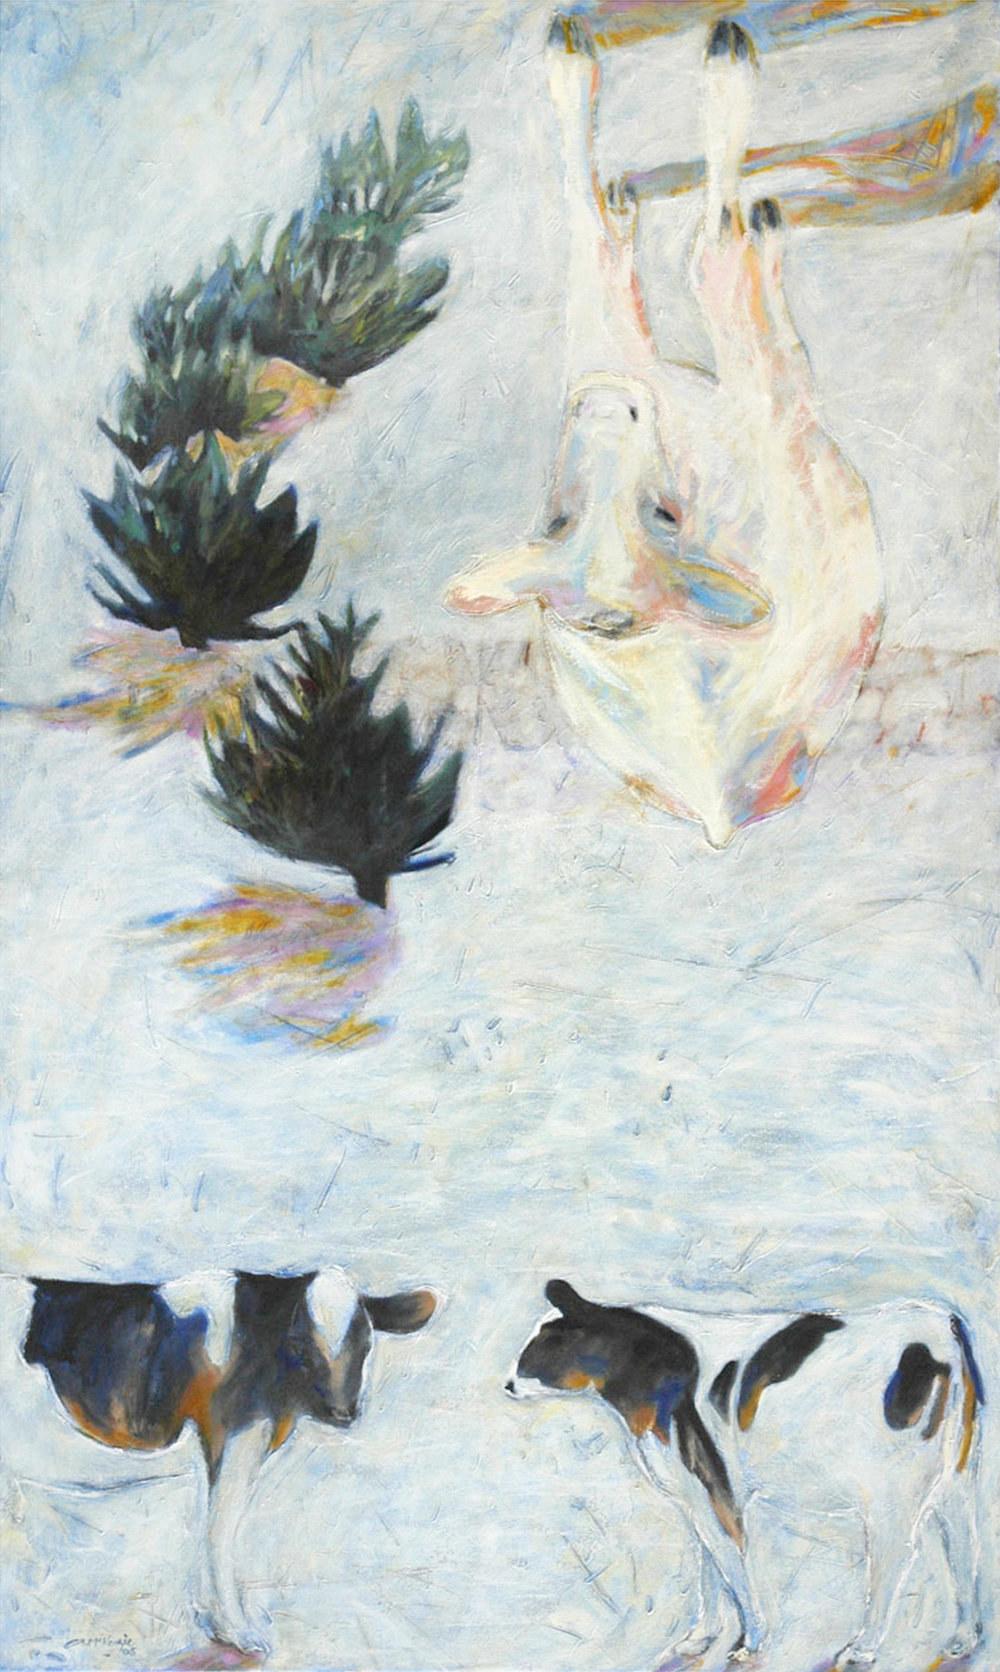 UNTITLED (COWS)